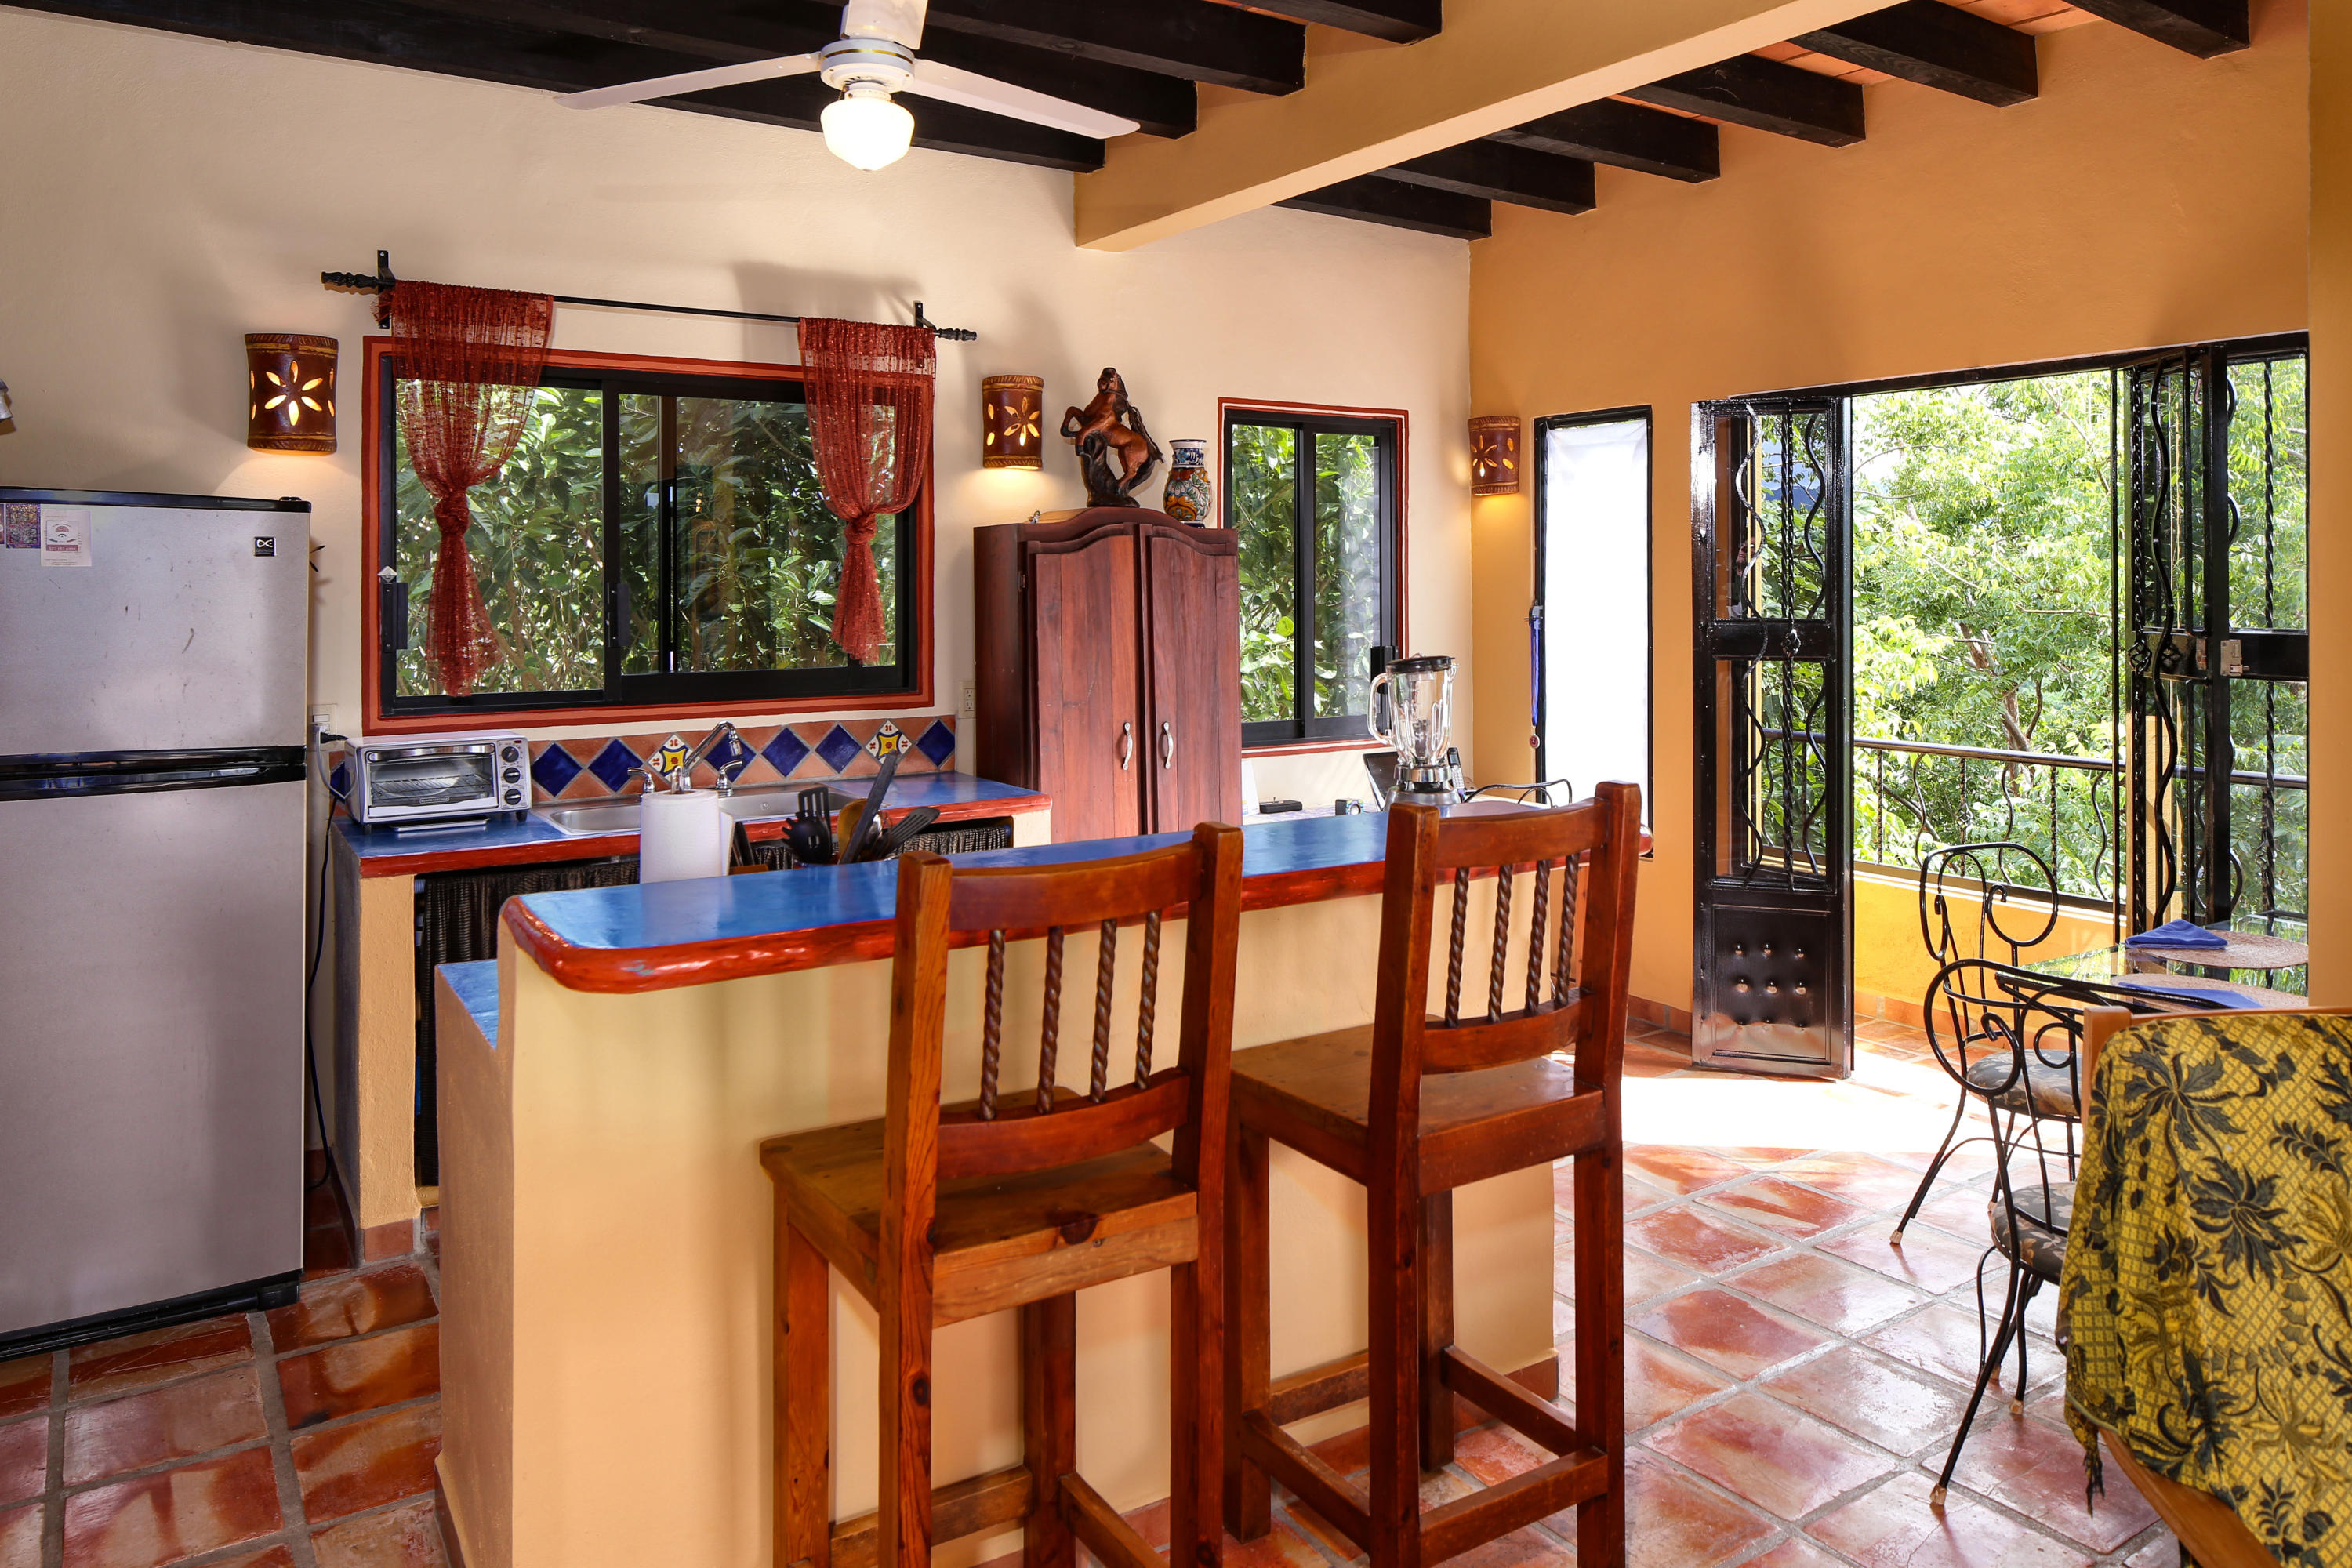 Pacifico Property, Casa Azalea, Real Estate, For Sale, Sayulita, 3 Bedrooms, 2.5 Bathrooms, Ocean View, Jungle View, Private Pool, Nayarit, Mexico